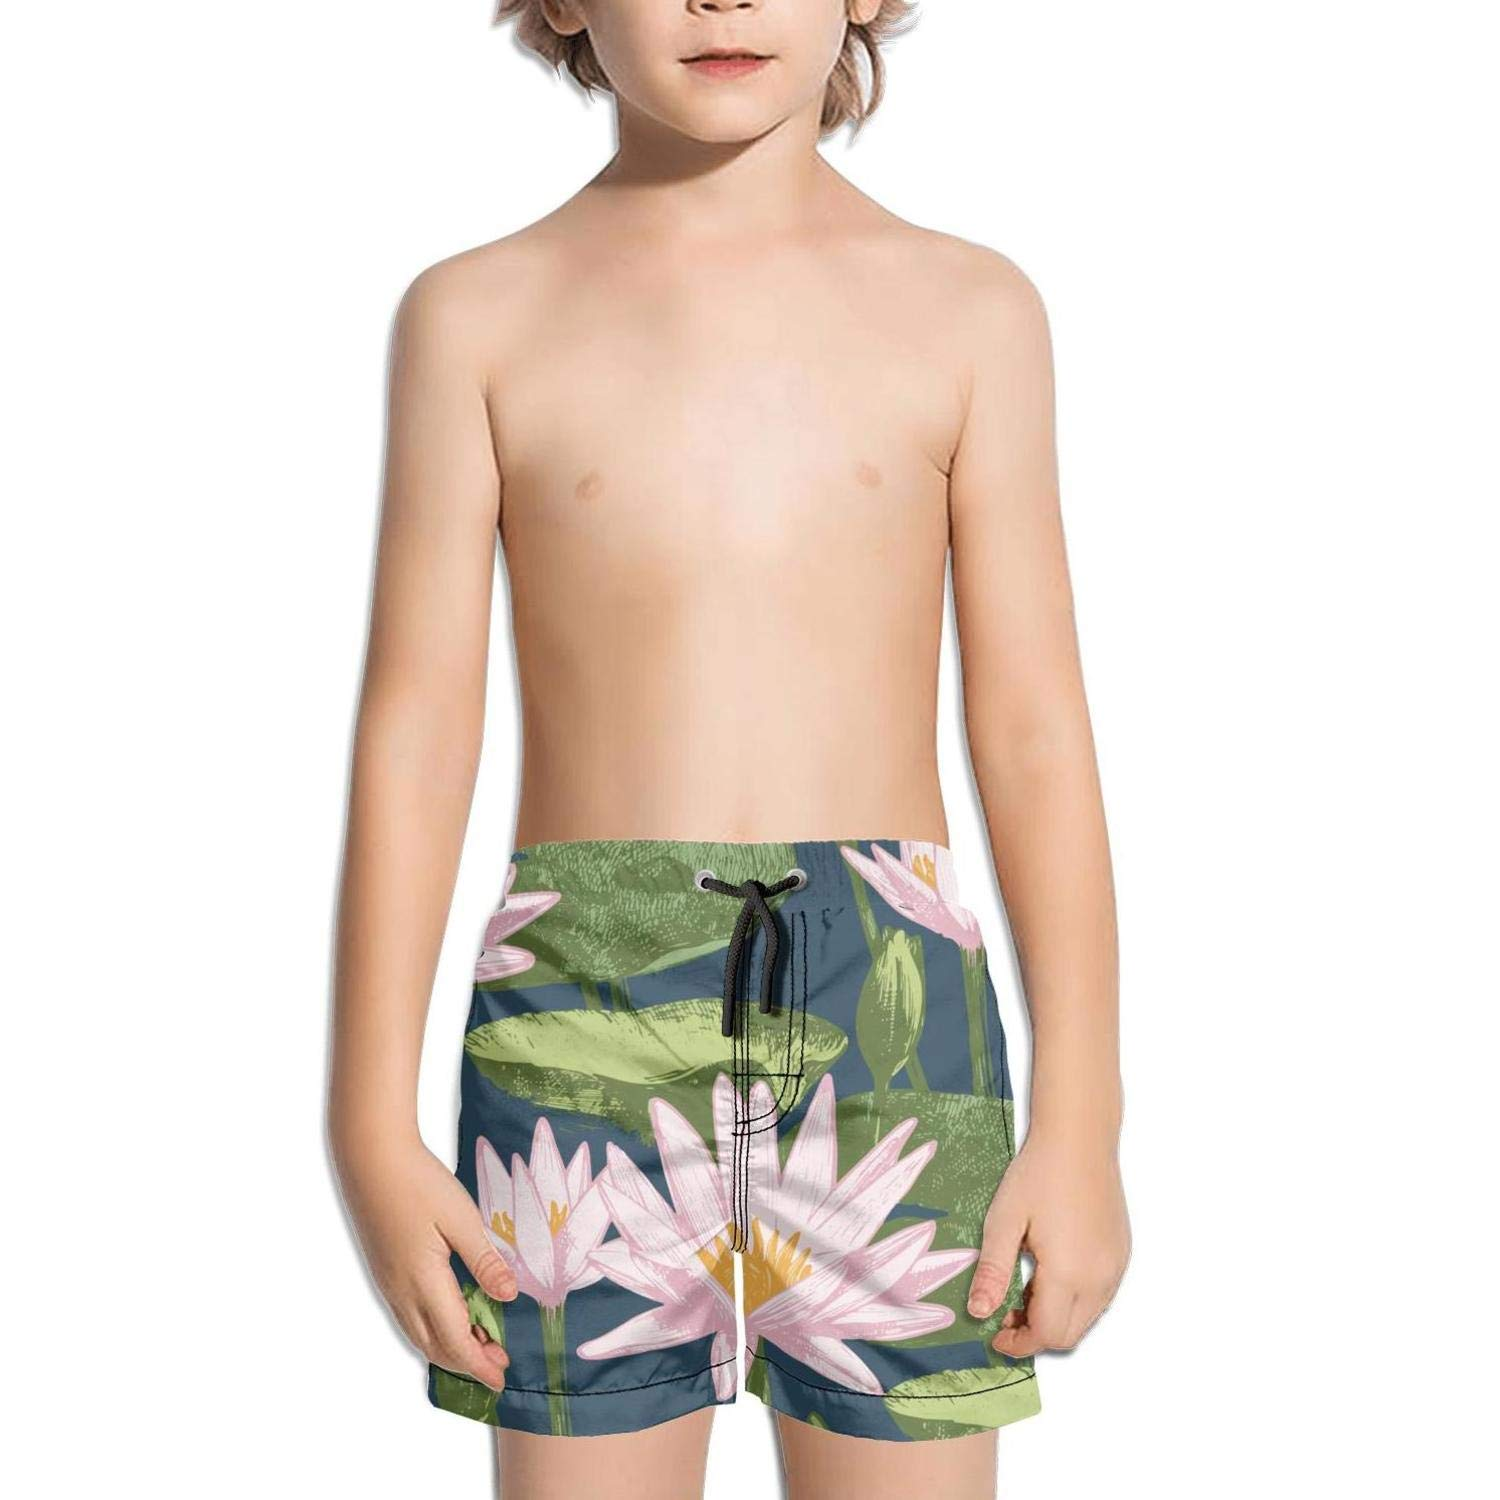 Lenard Hughes Boys Quick Dry Beach Shorts with Pockets Pink Japanese Watercolor Lotus flower-01 Swim Trunks for Summer